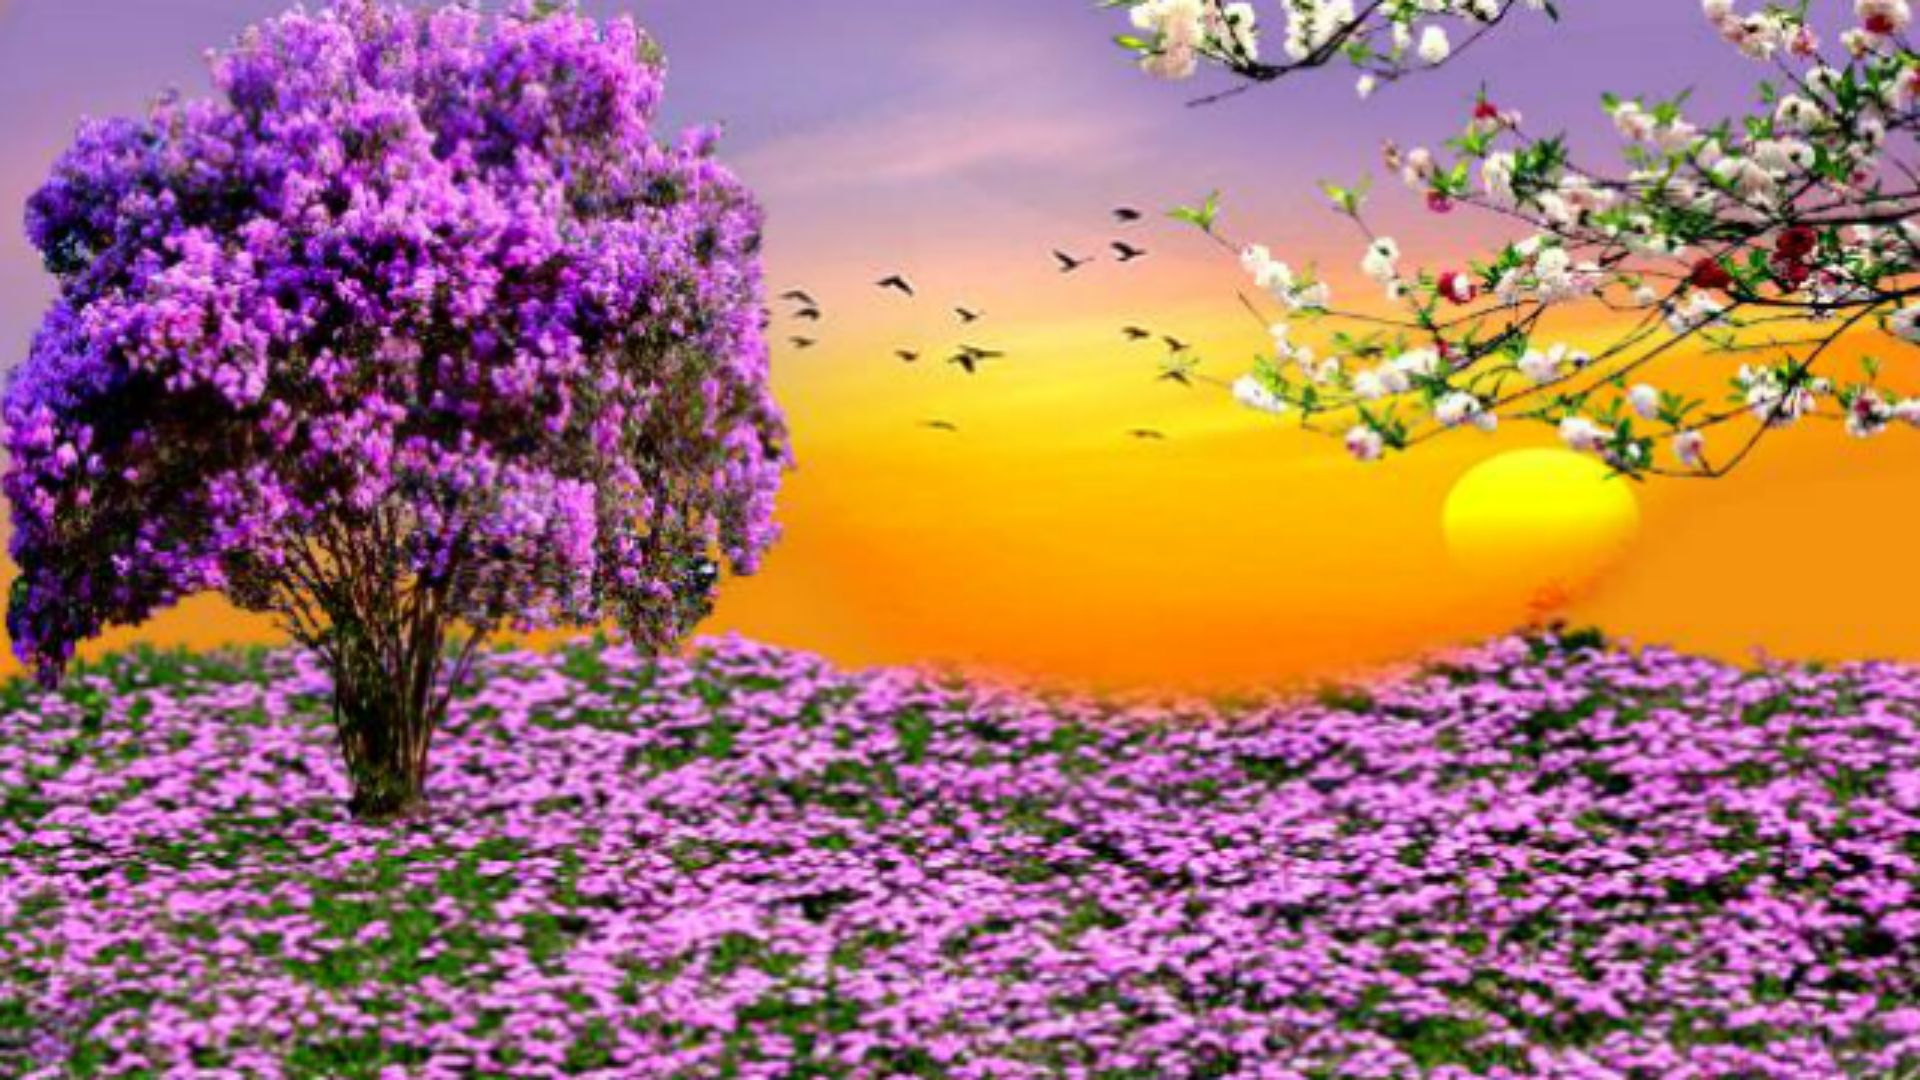 wallpapers toptenpack com purple - photo #8